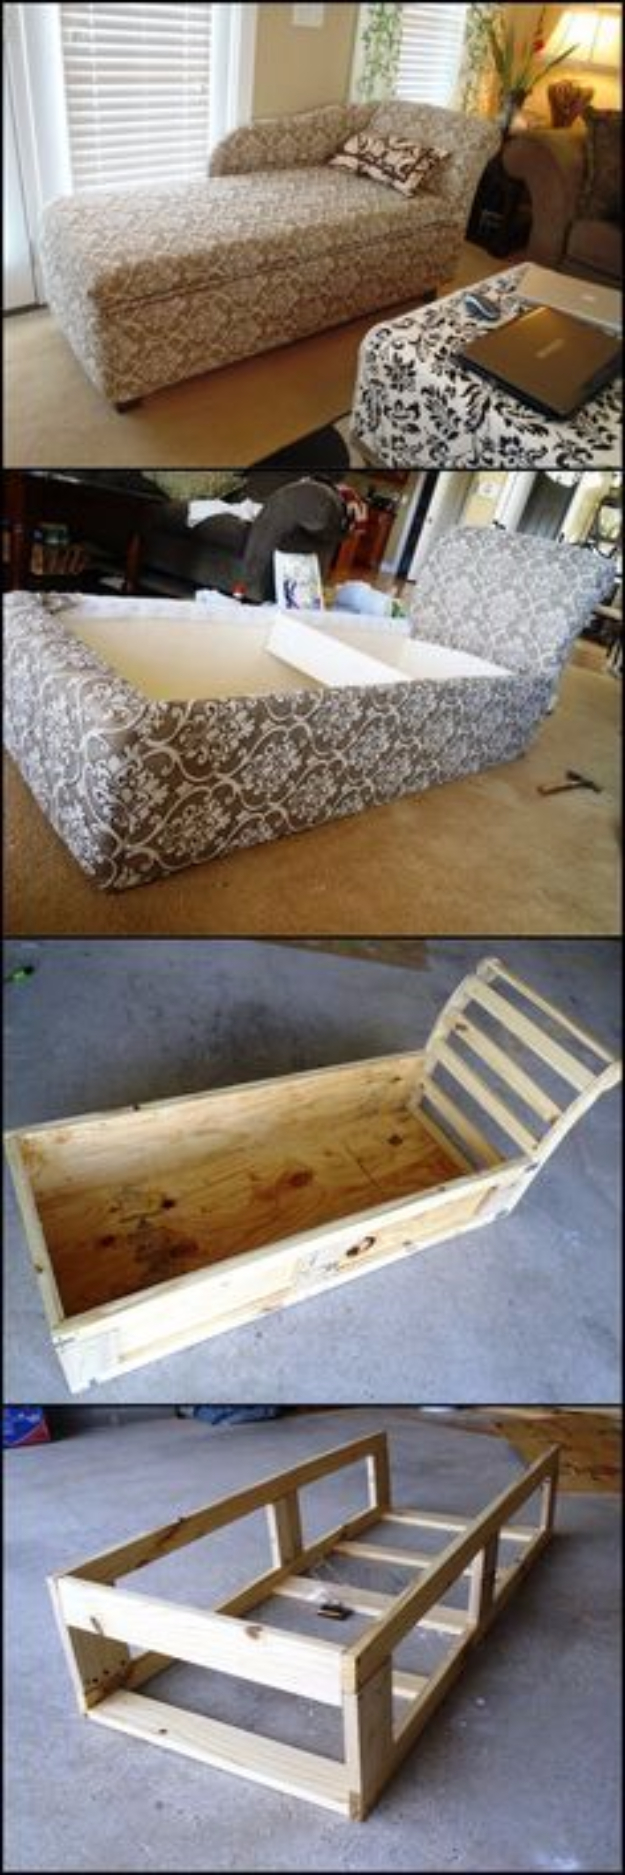 35 super cool diy sofas and couches page 4 of 4 diy joy for Building a chaise lounge